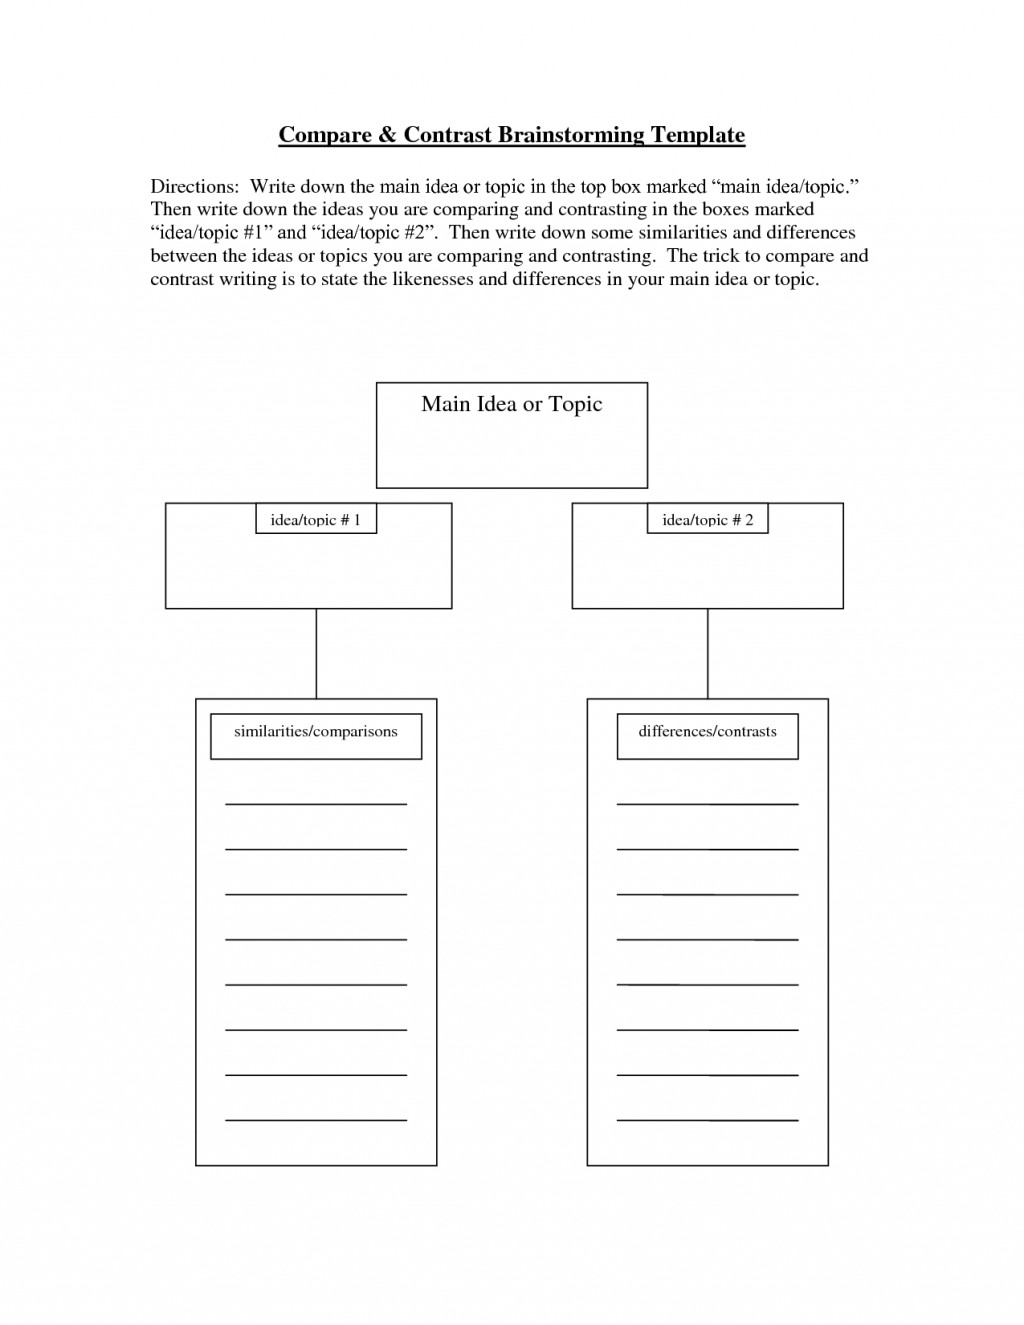 008 Brainstorming Essay Example Compare And Contrast Exceptional Template 5th Grade Sample Examples Large